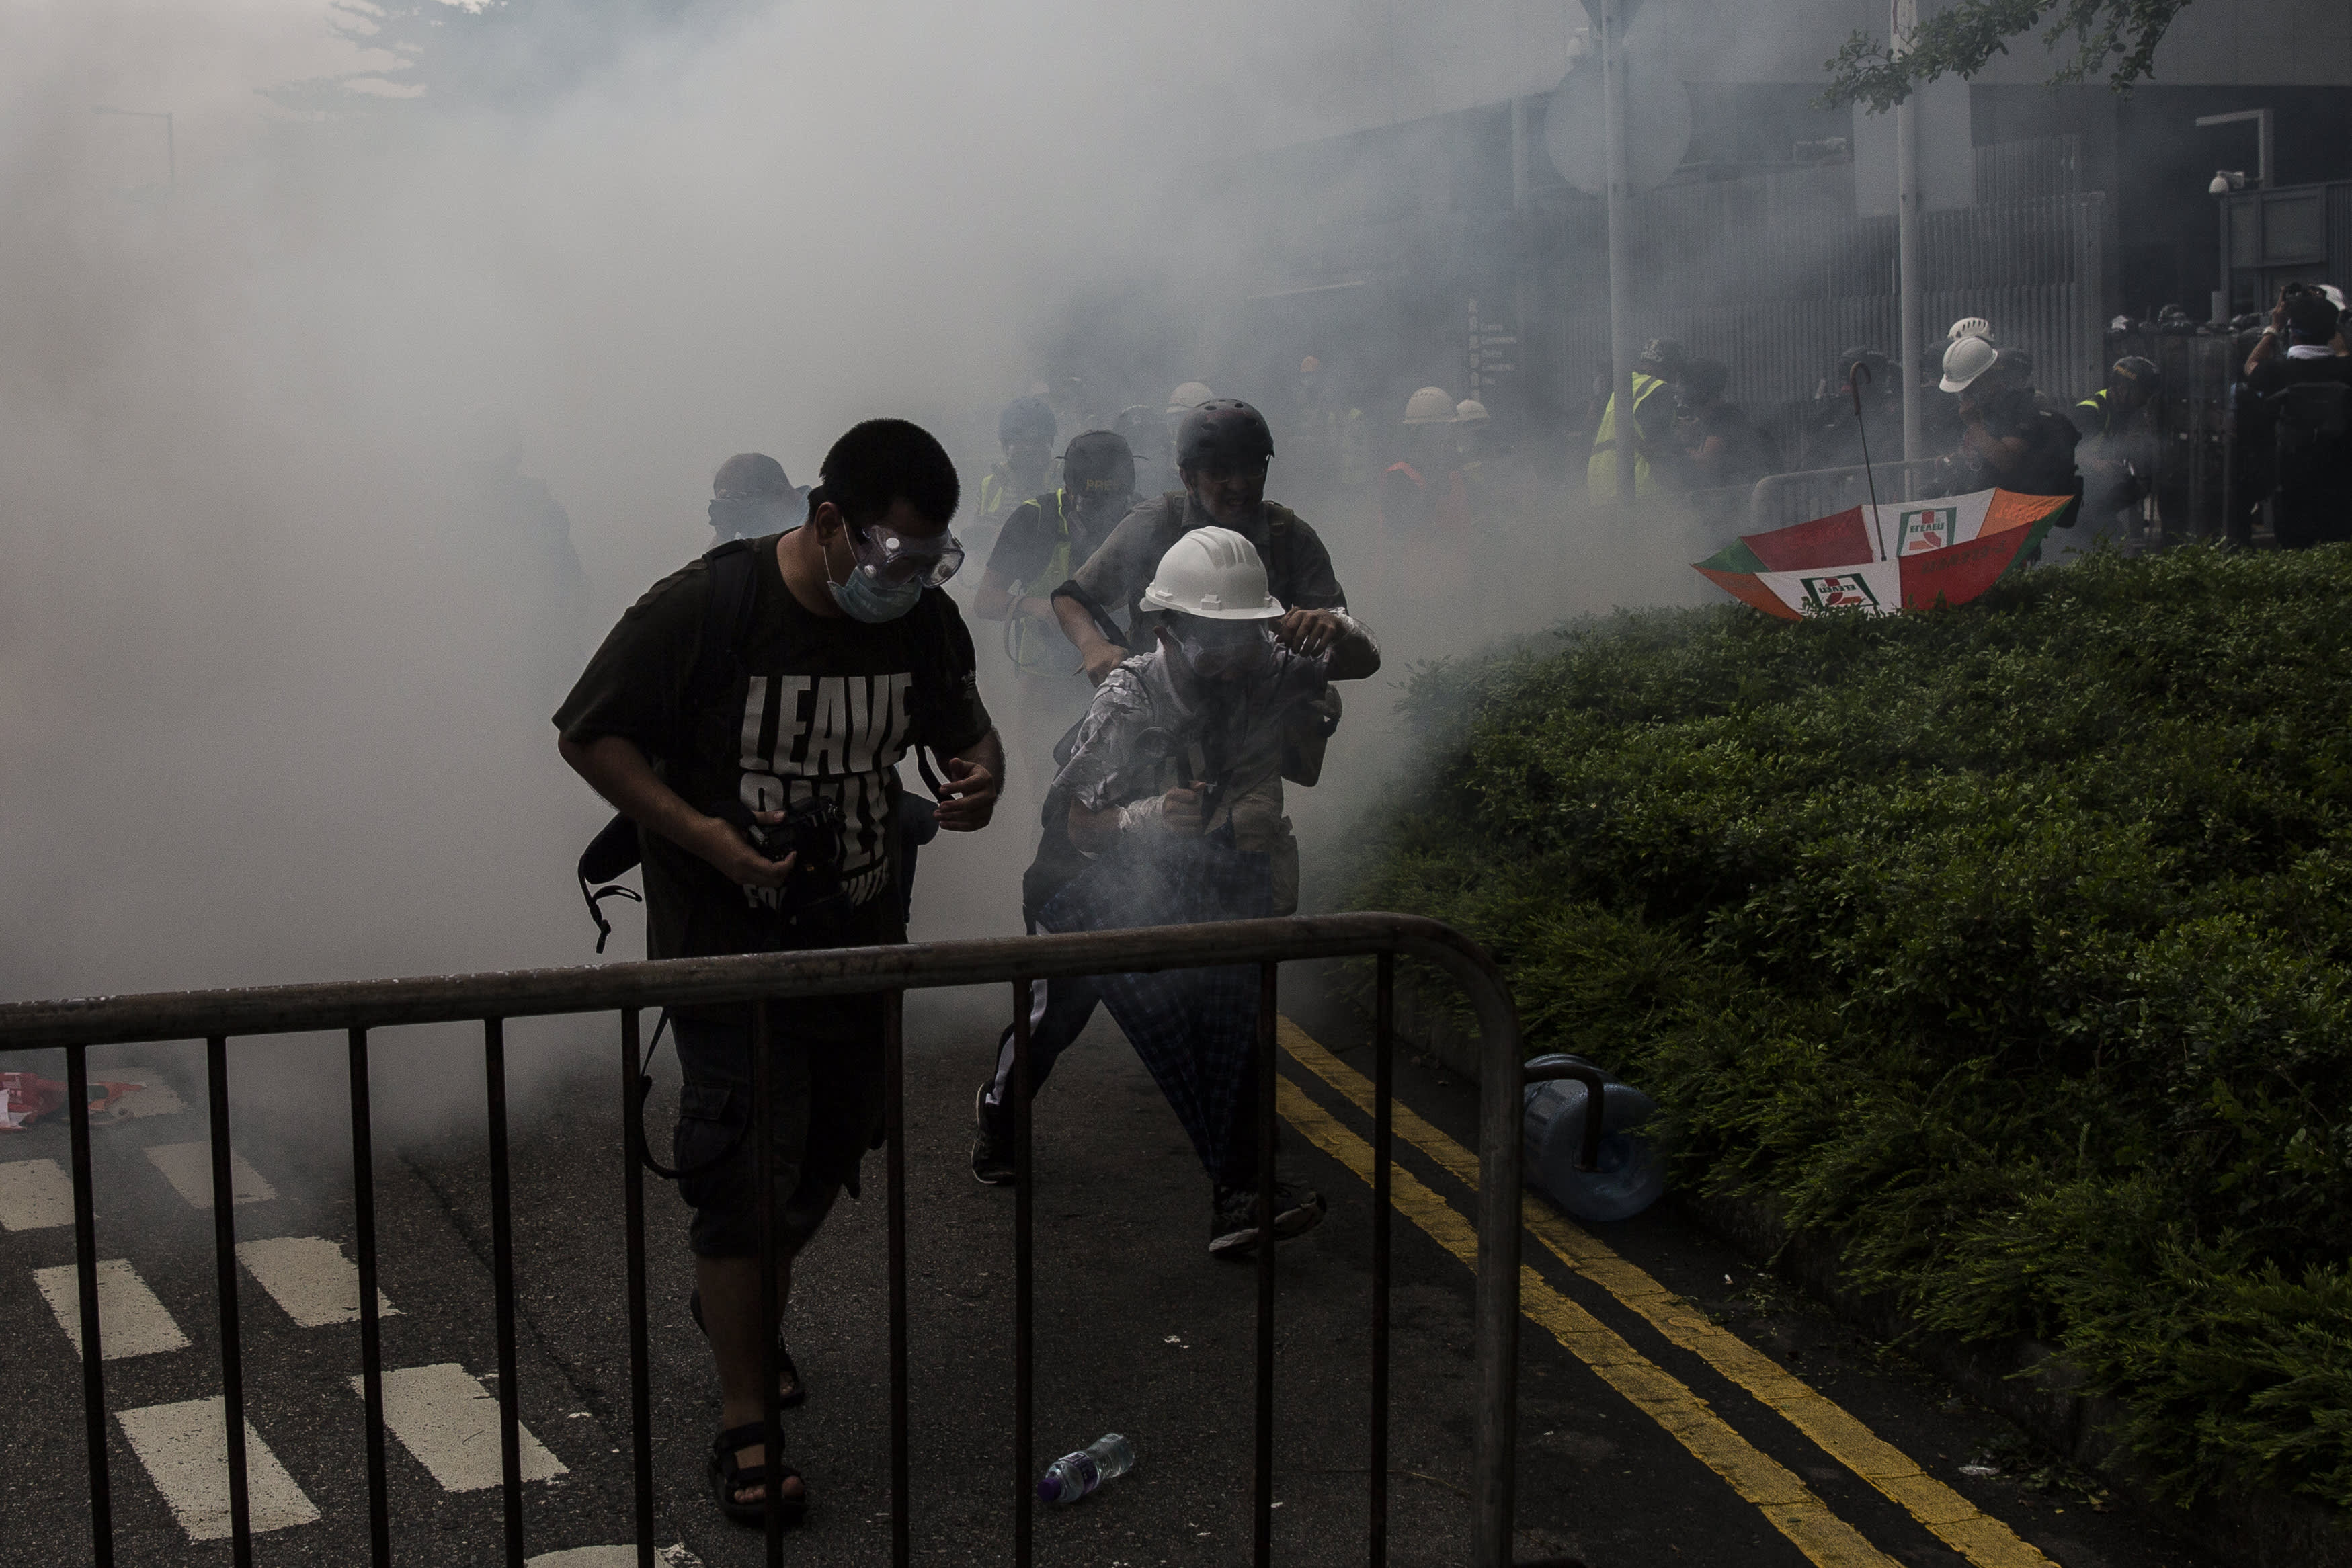 Police repeatedly fire tear gas on protesters as confrontation turns violent in Hong Kong